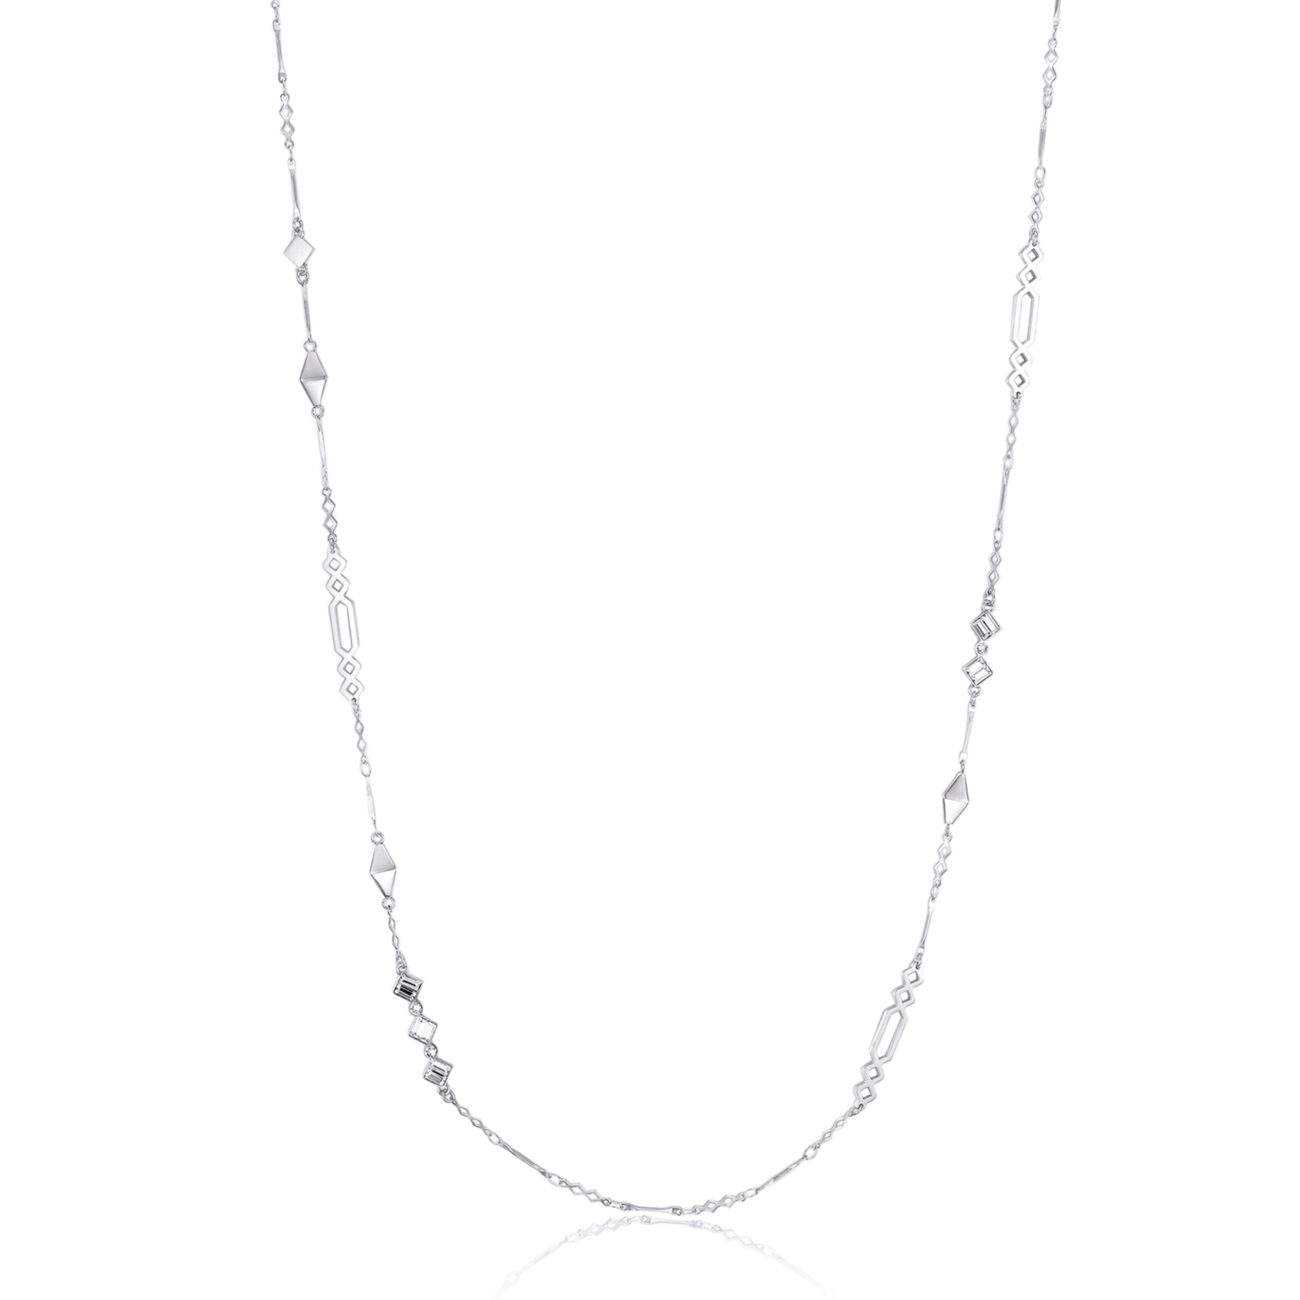 316L stainless steel long island necklace with swarovski crystals.